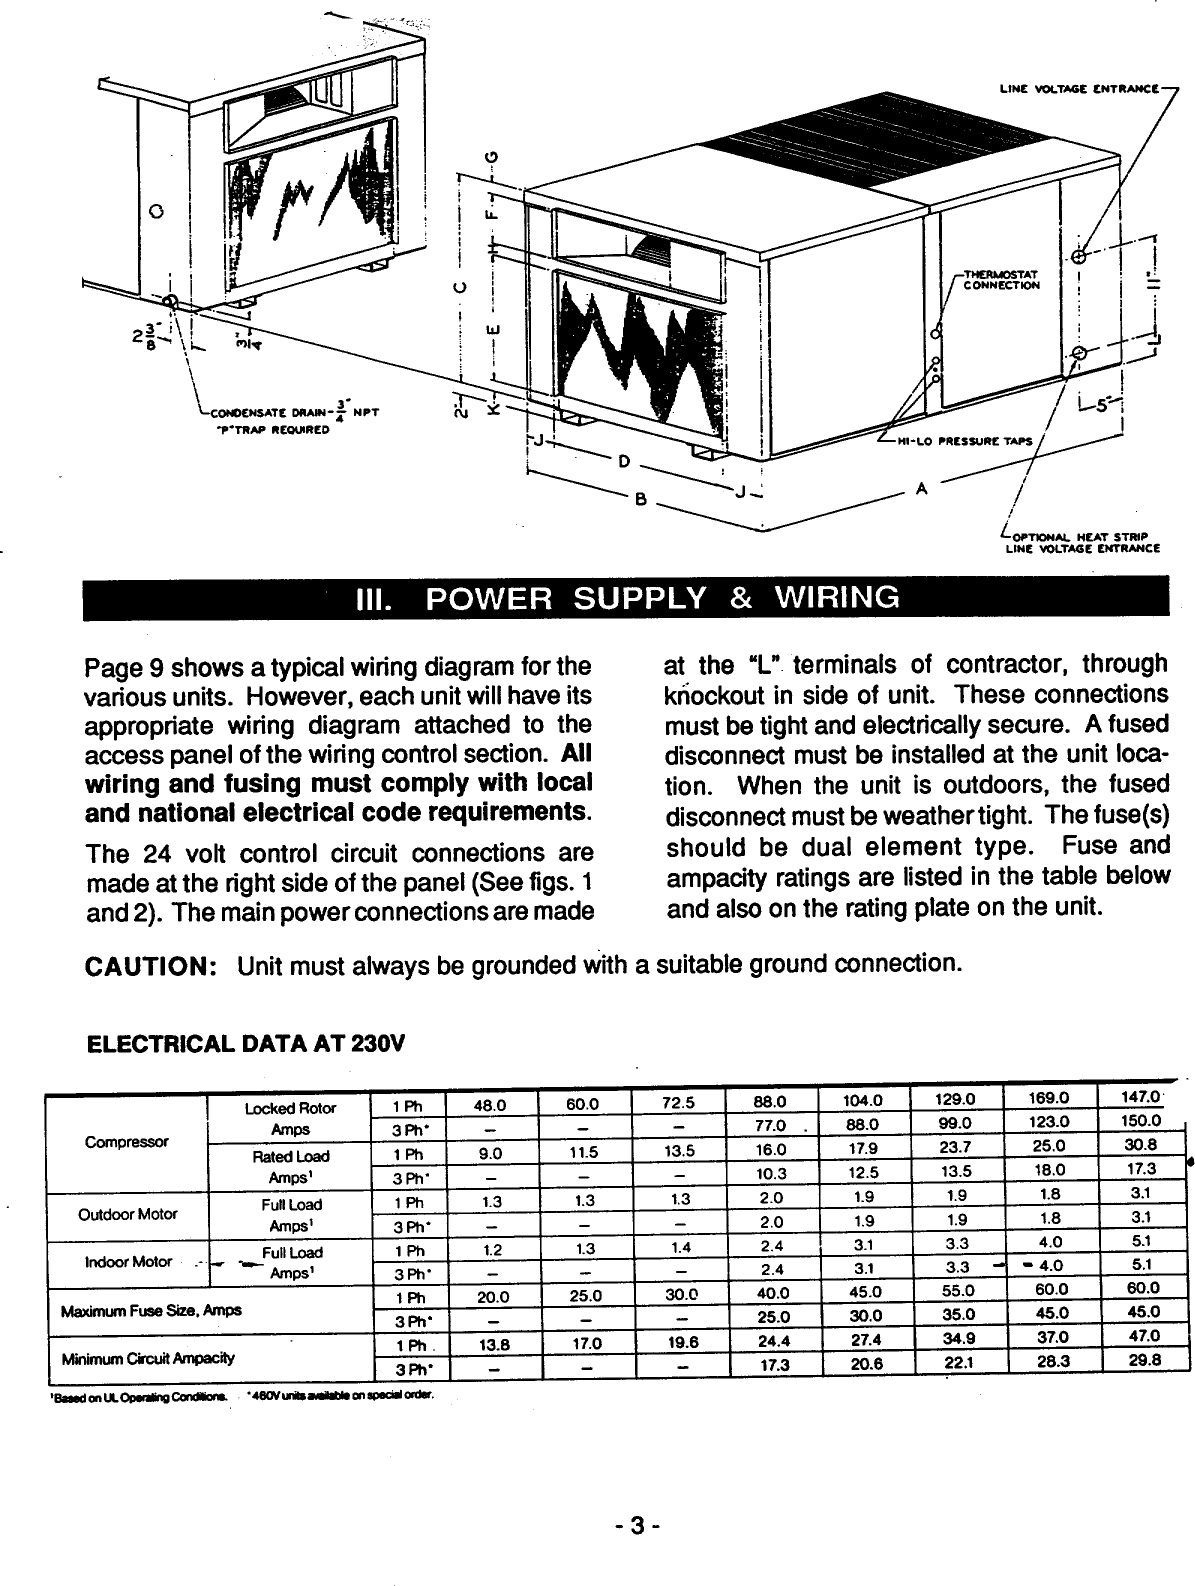 Goettl air conditioning model numbers wiring diagrams